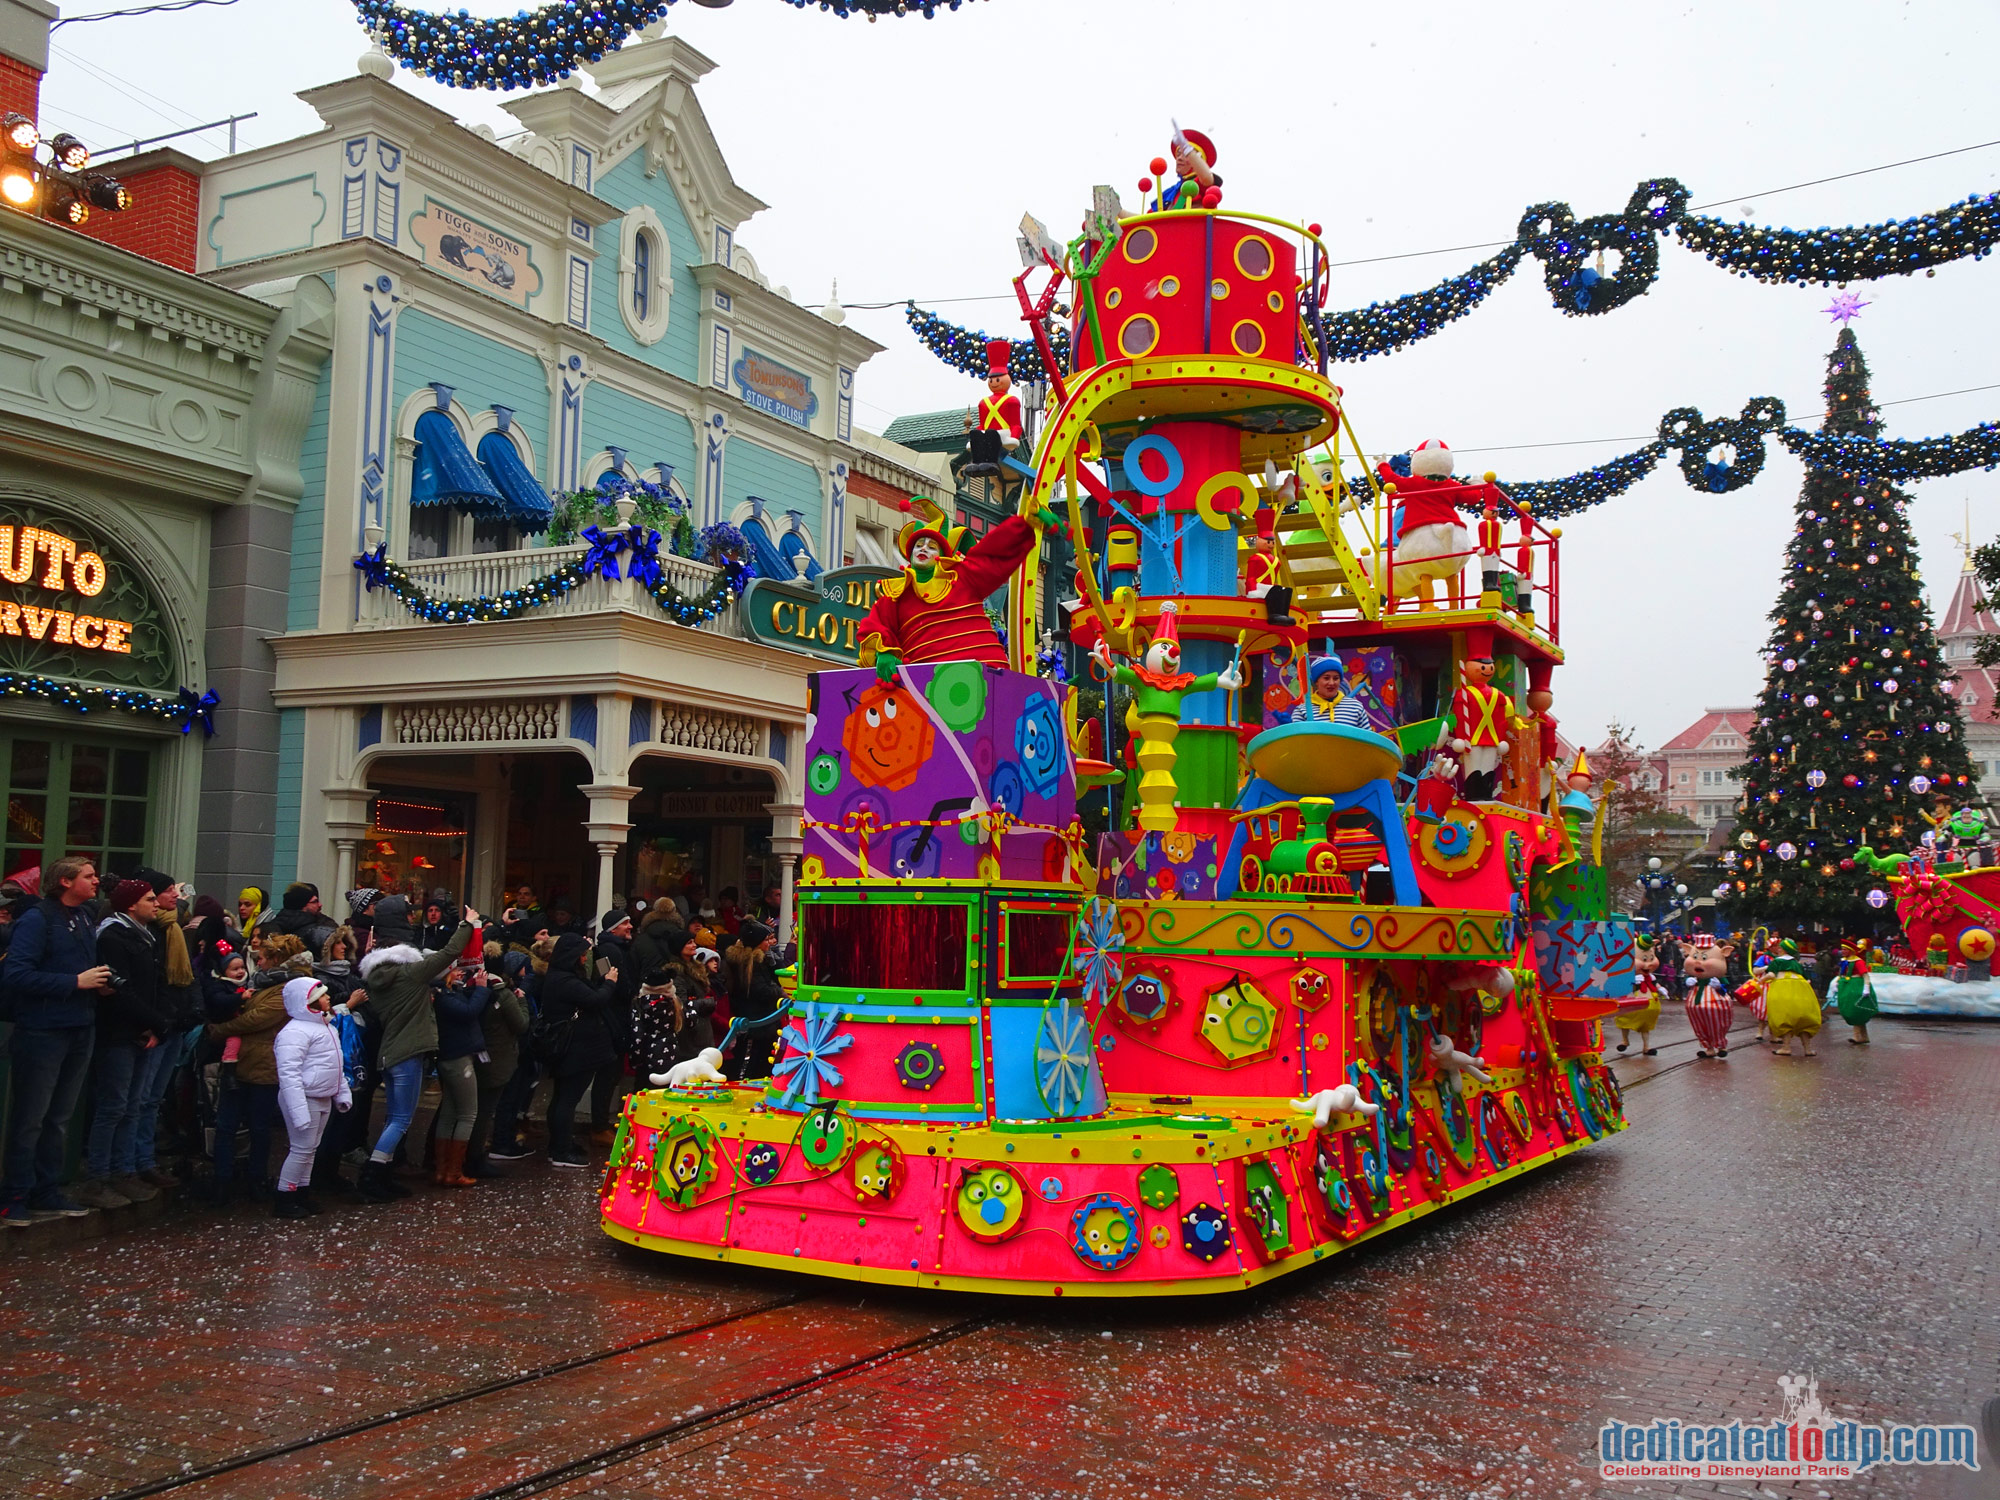 disneys christmas parade disneys enchanted christmas 2018 in disneyland paris - When Does Disneyland Decorate For Christmas 2018